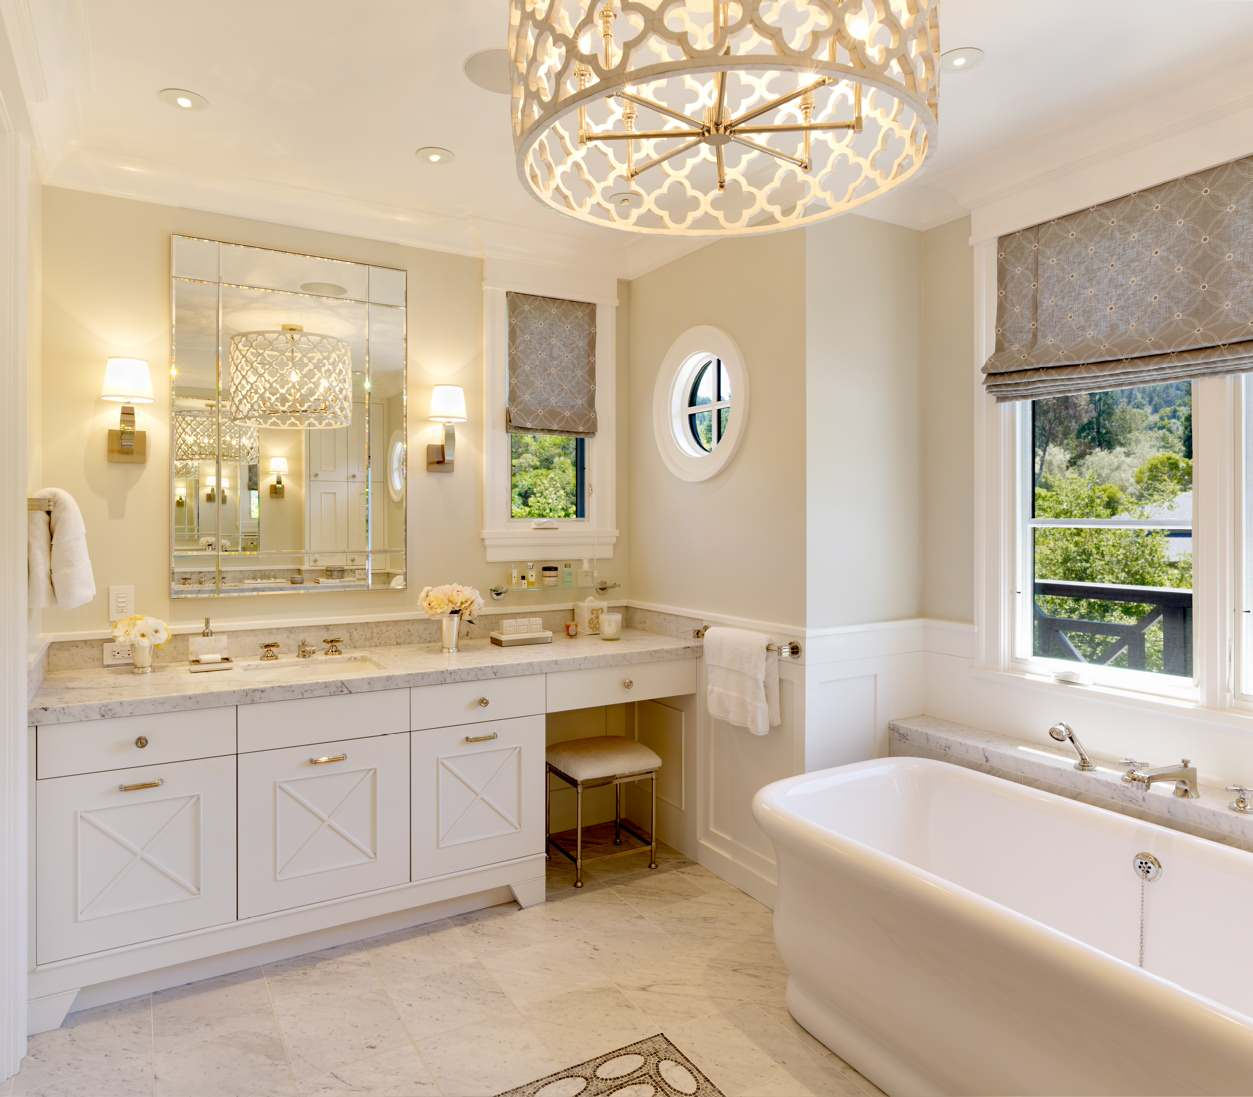 8 simple tricks to an inexpensive bathroom makeover for Master bathroom fixtures